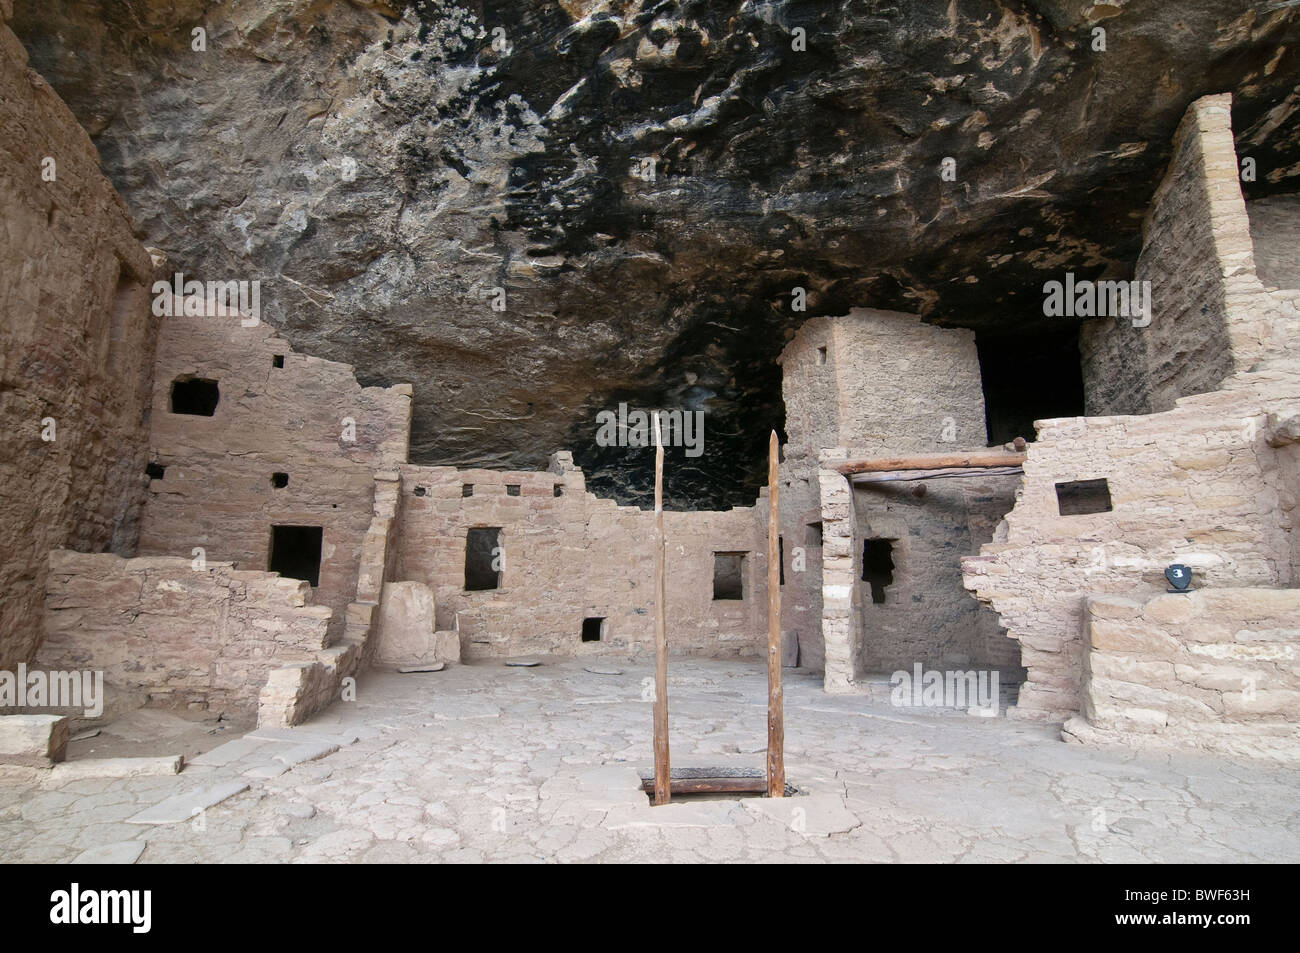 Spruce Tree House, a cliff dwelling of the Ancestral Puebloans American Indians, about 1250 years old, Mesa Verde - Stock Image